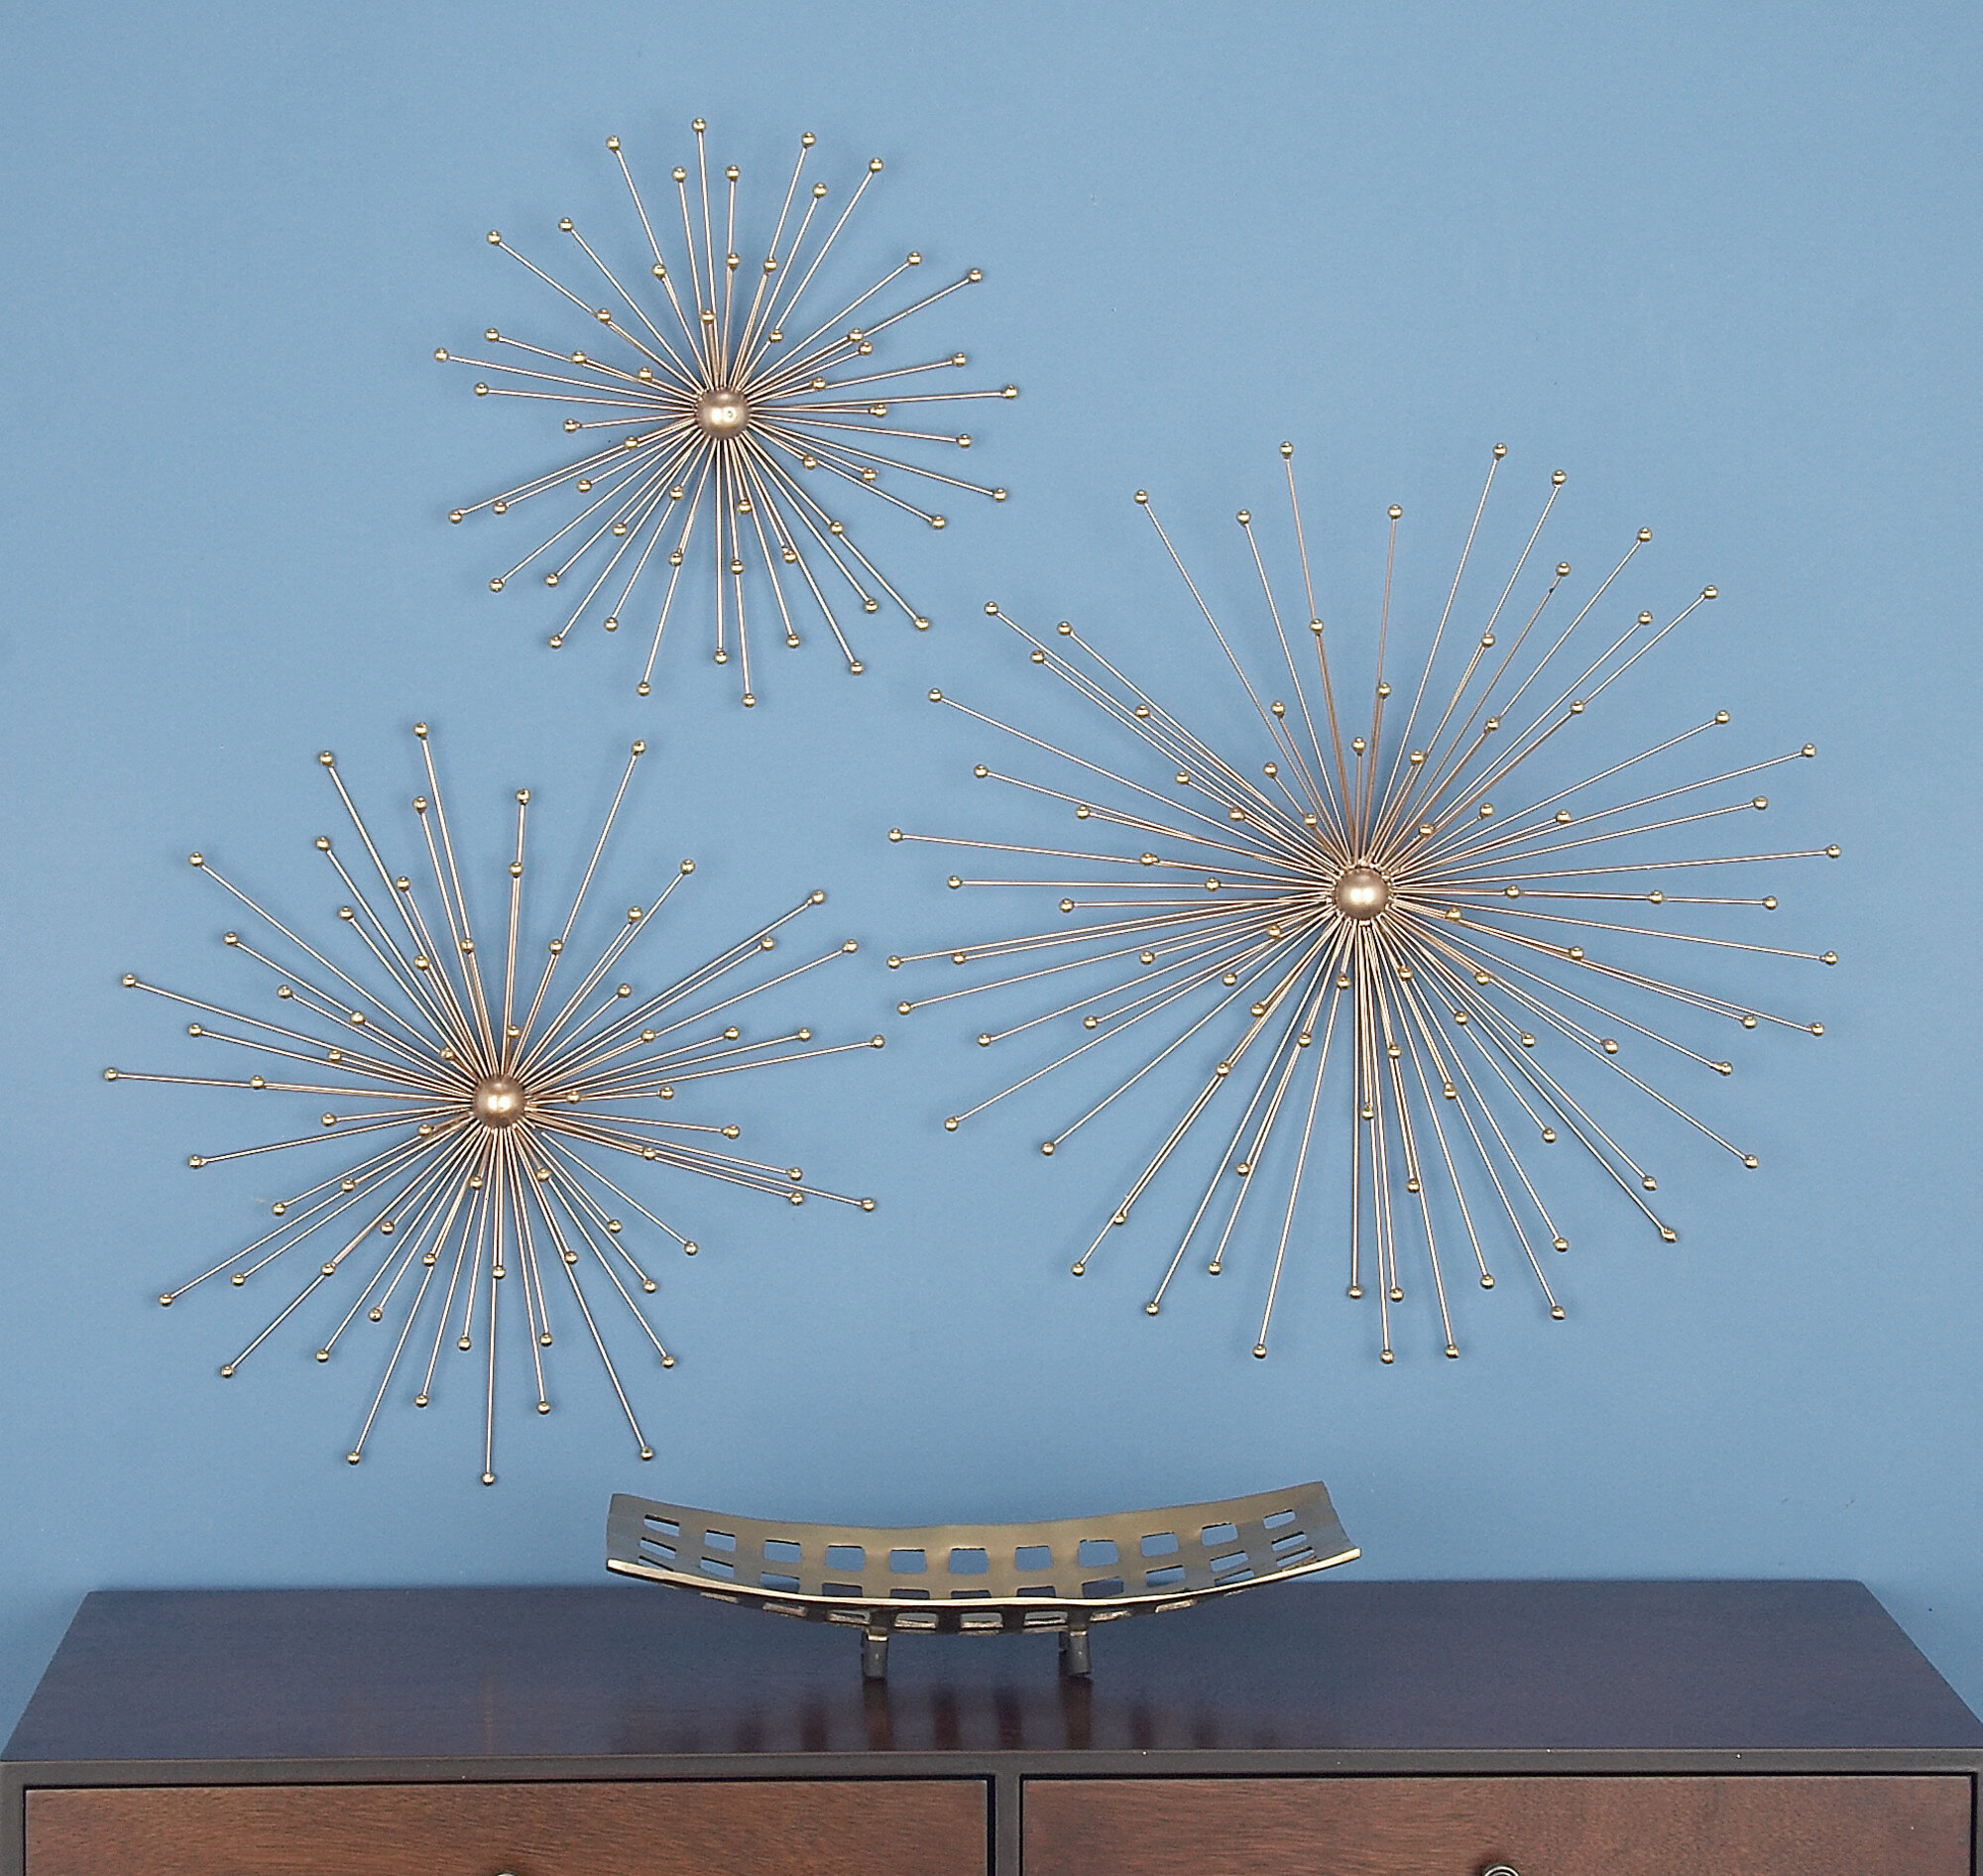 3 Piece Metallic Star Wall Décor Set Pertaining To 3 Piece Star Wall Decor Sets (View 7 of 30)